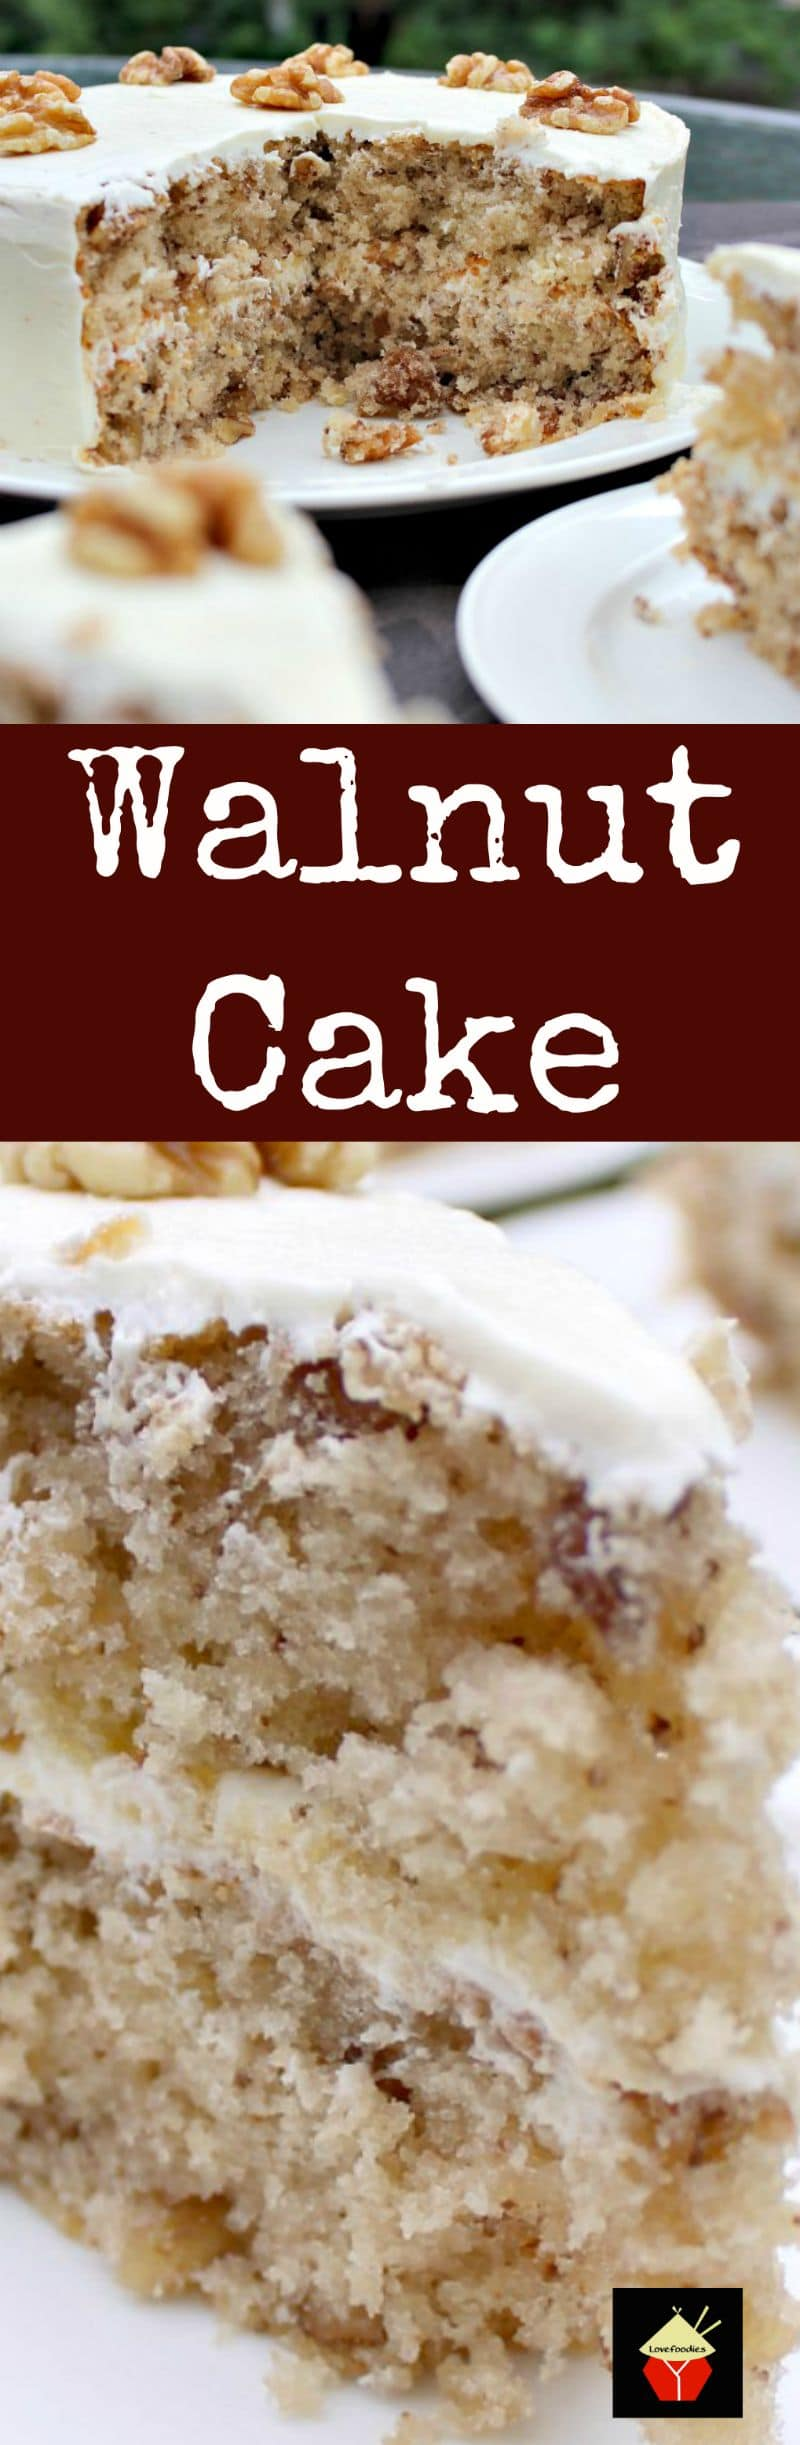 Easy And Nice Cake Recipes